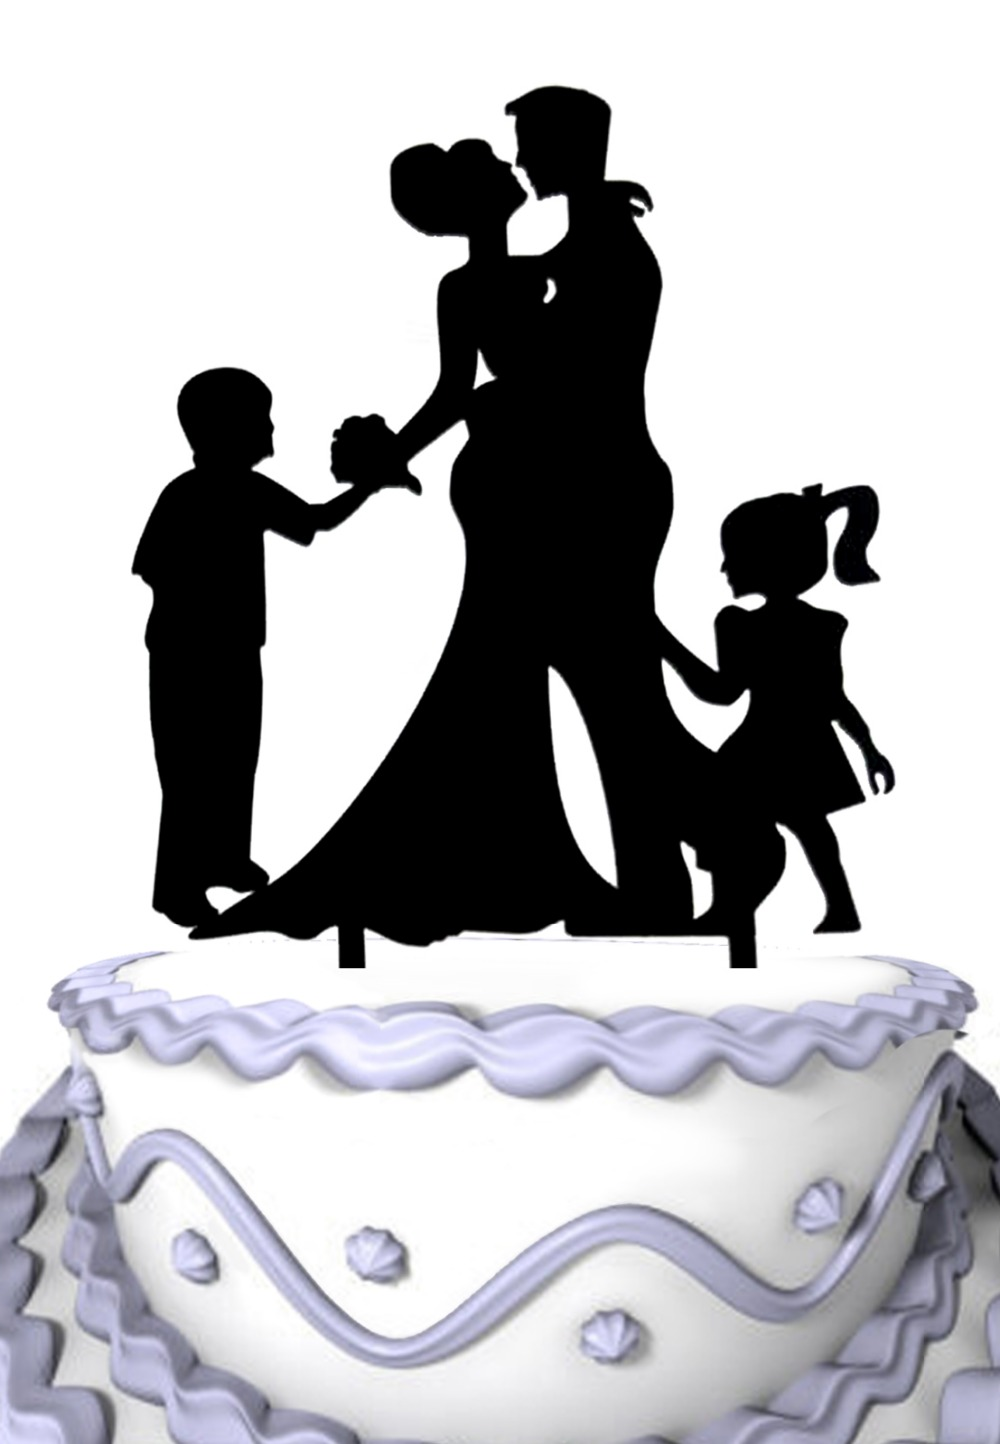 Wedding Cake Decoration Groom And Bride With Two Kids Silhouette Topper Family Girl Boy Couple In Decorating Supplies